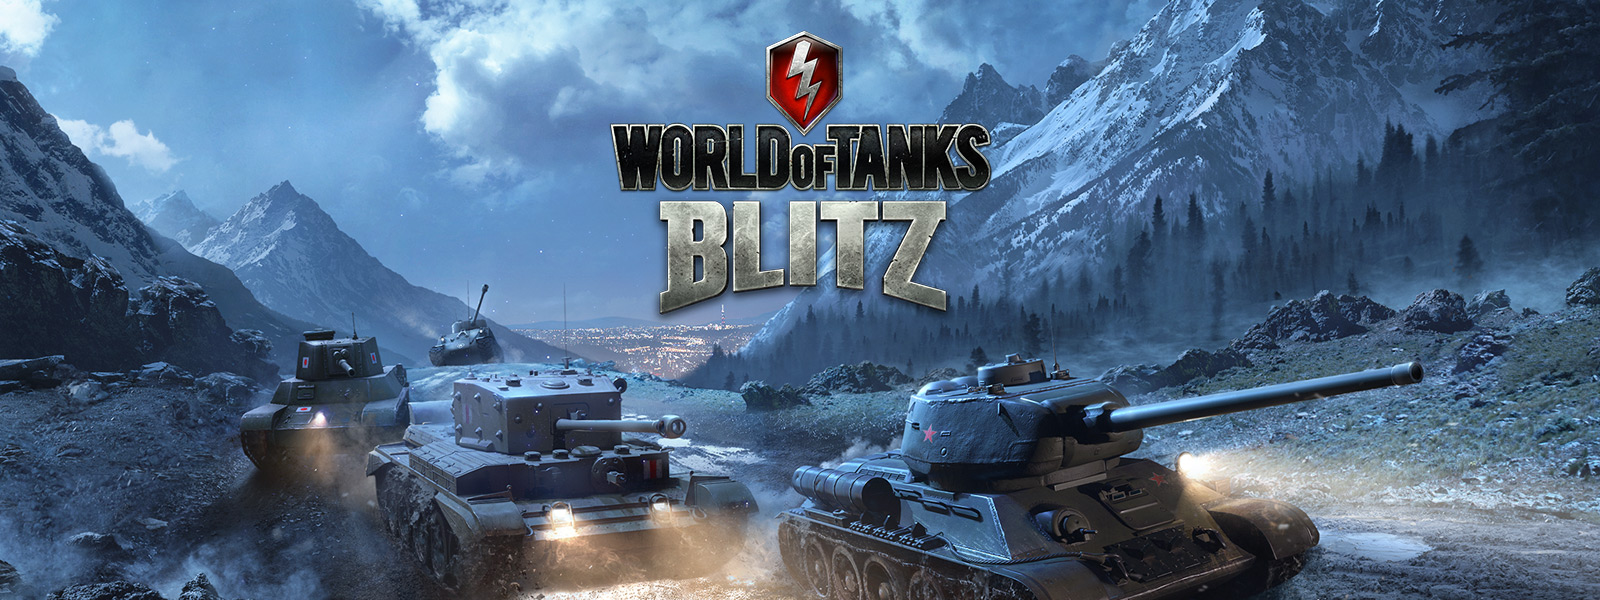 World of Tanks Blitz, Line tanks roll through mountains at night